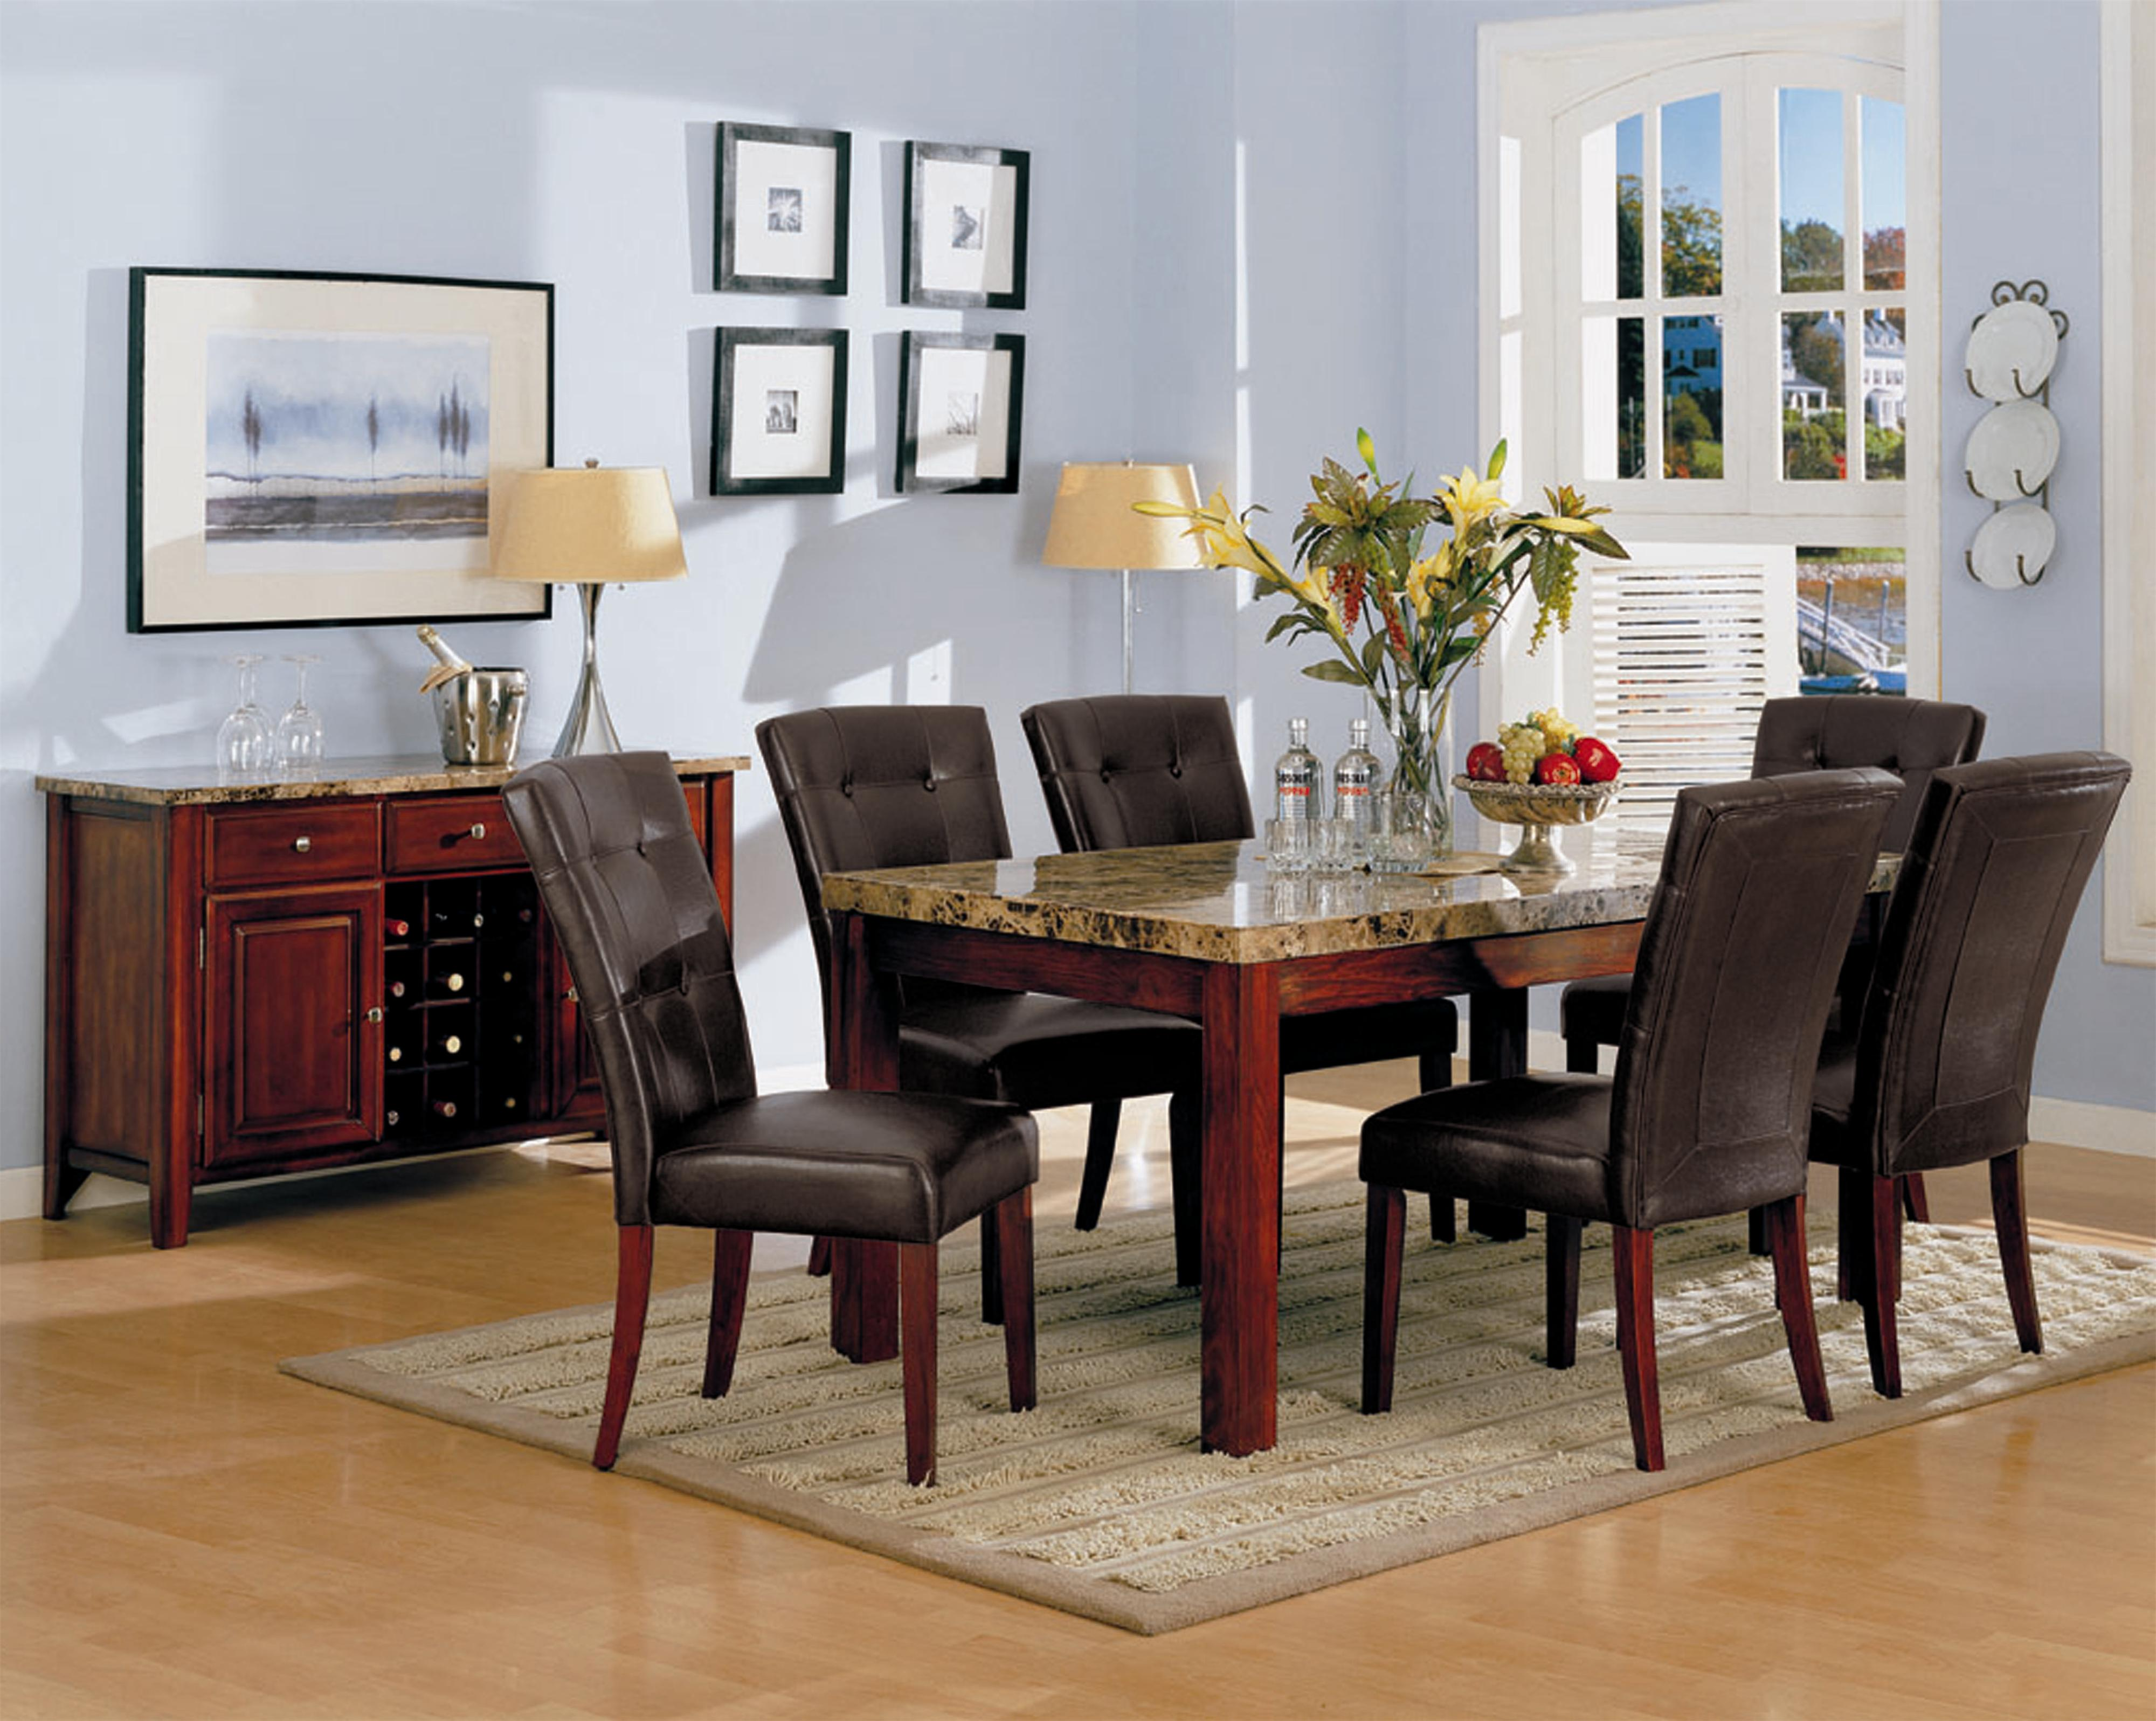 Dining room buffet tables